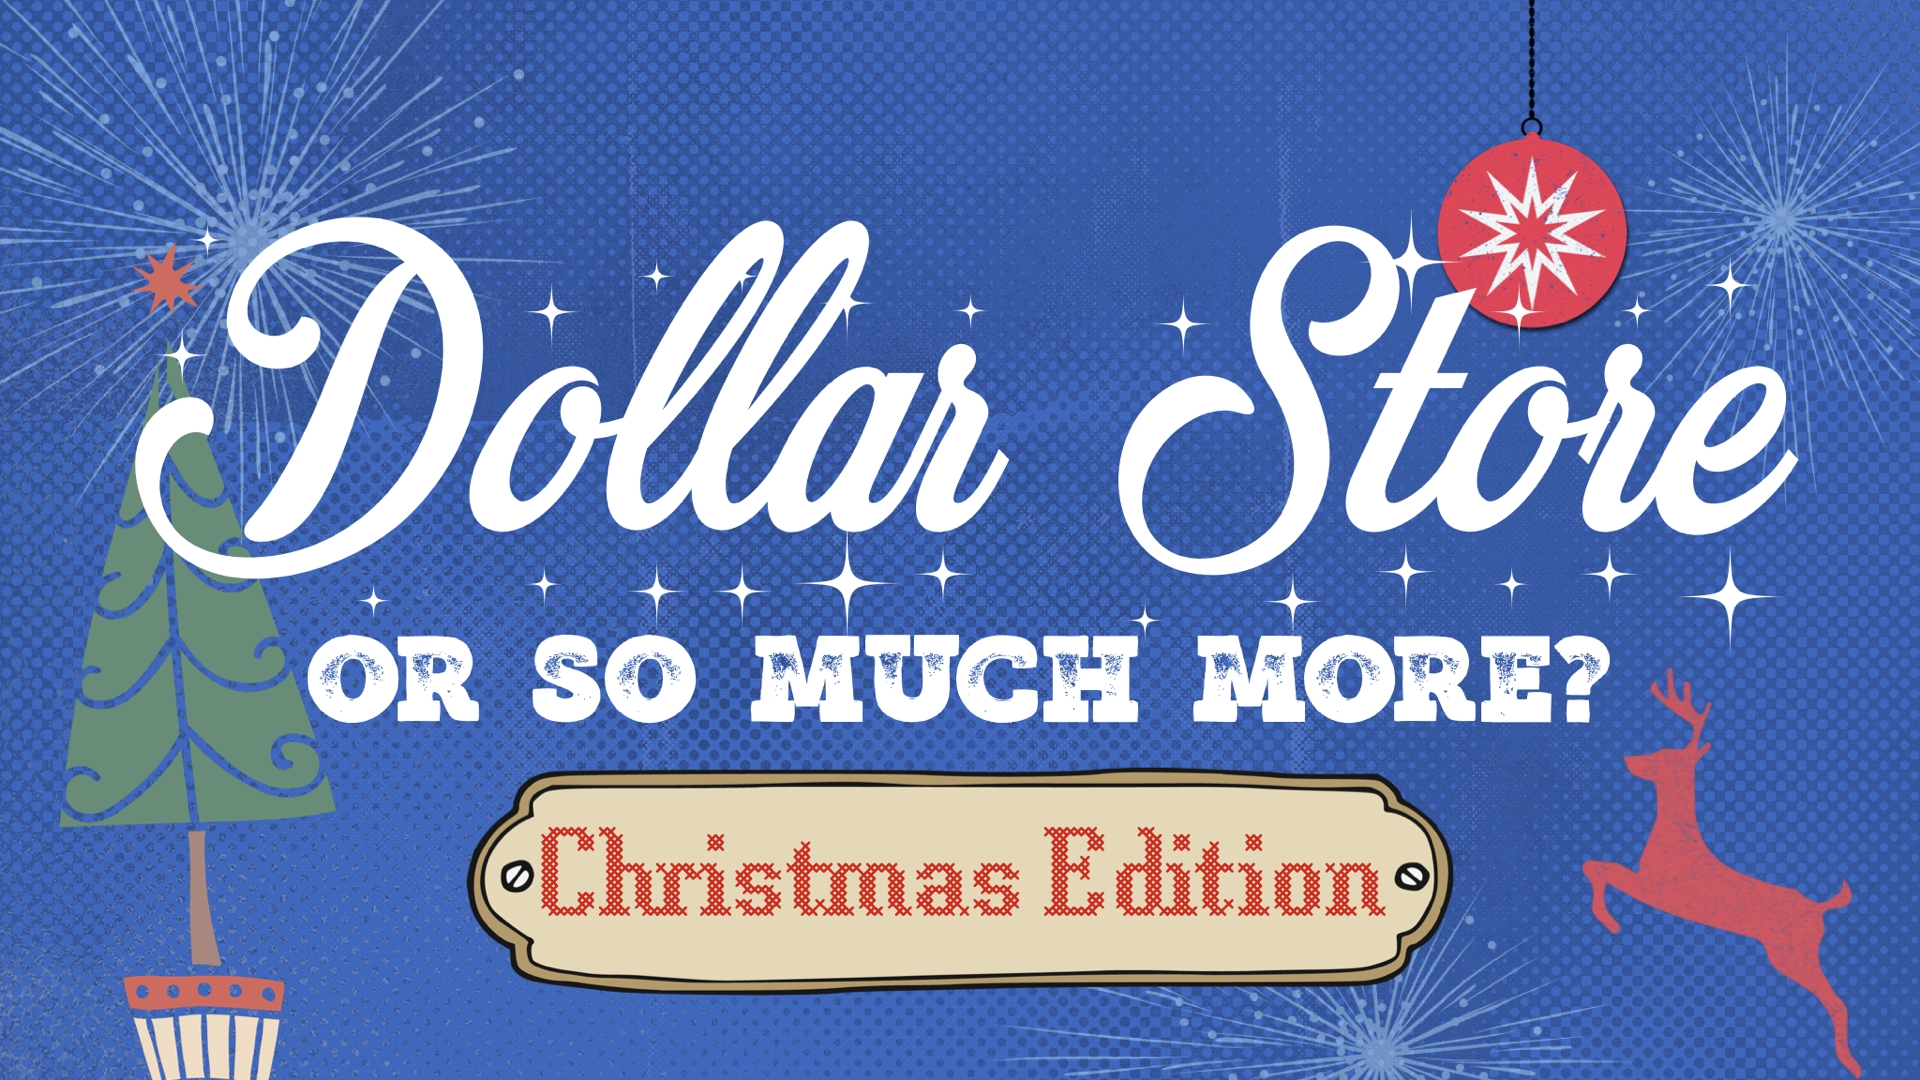 Dollar Store or So Much More? Christmas Edition